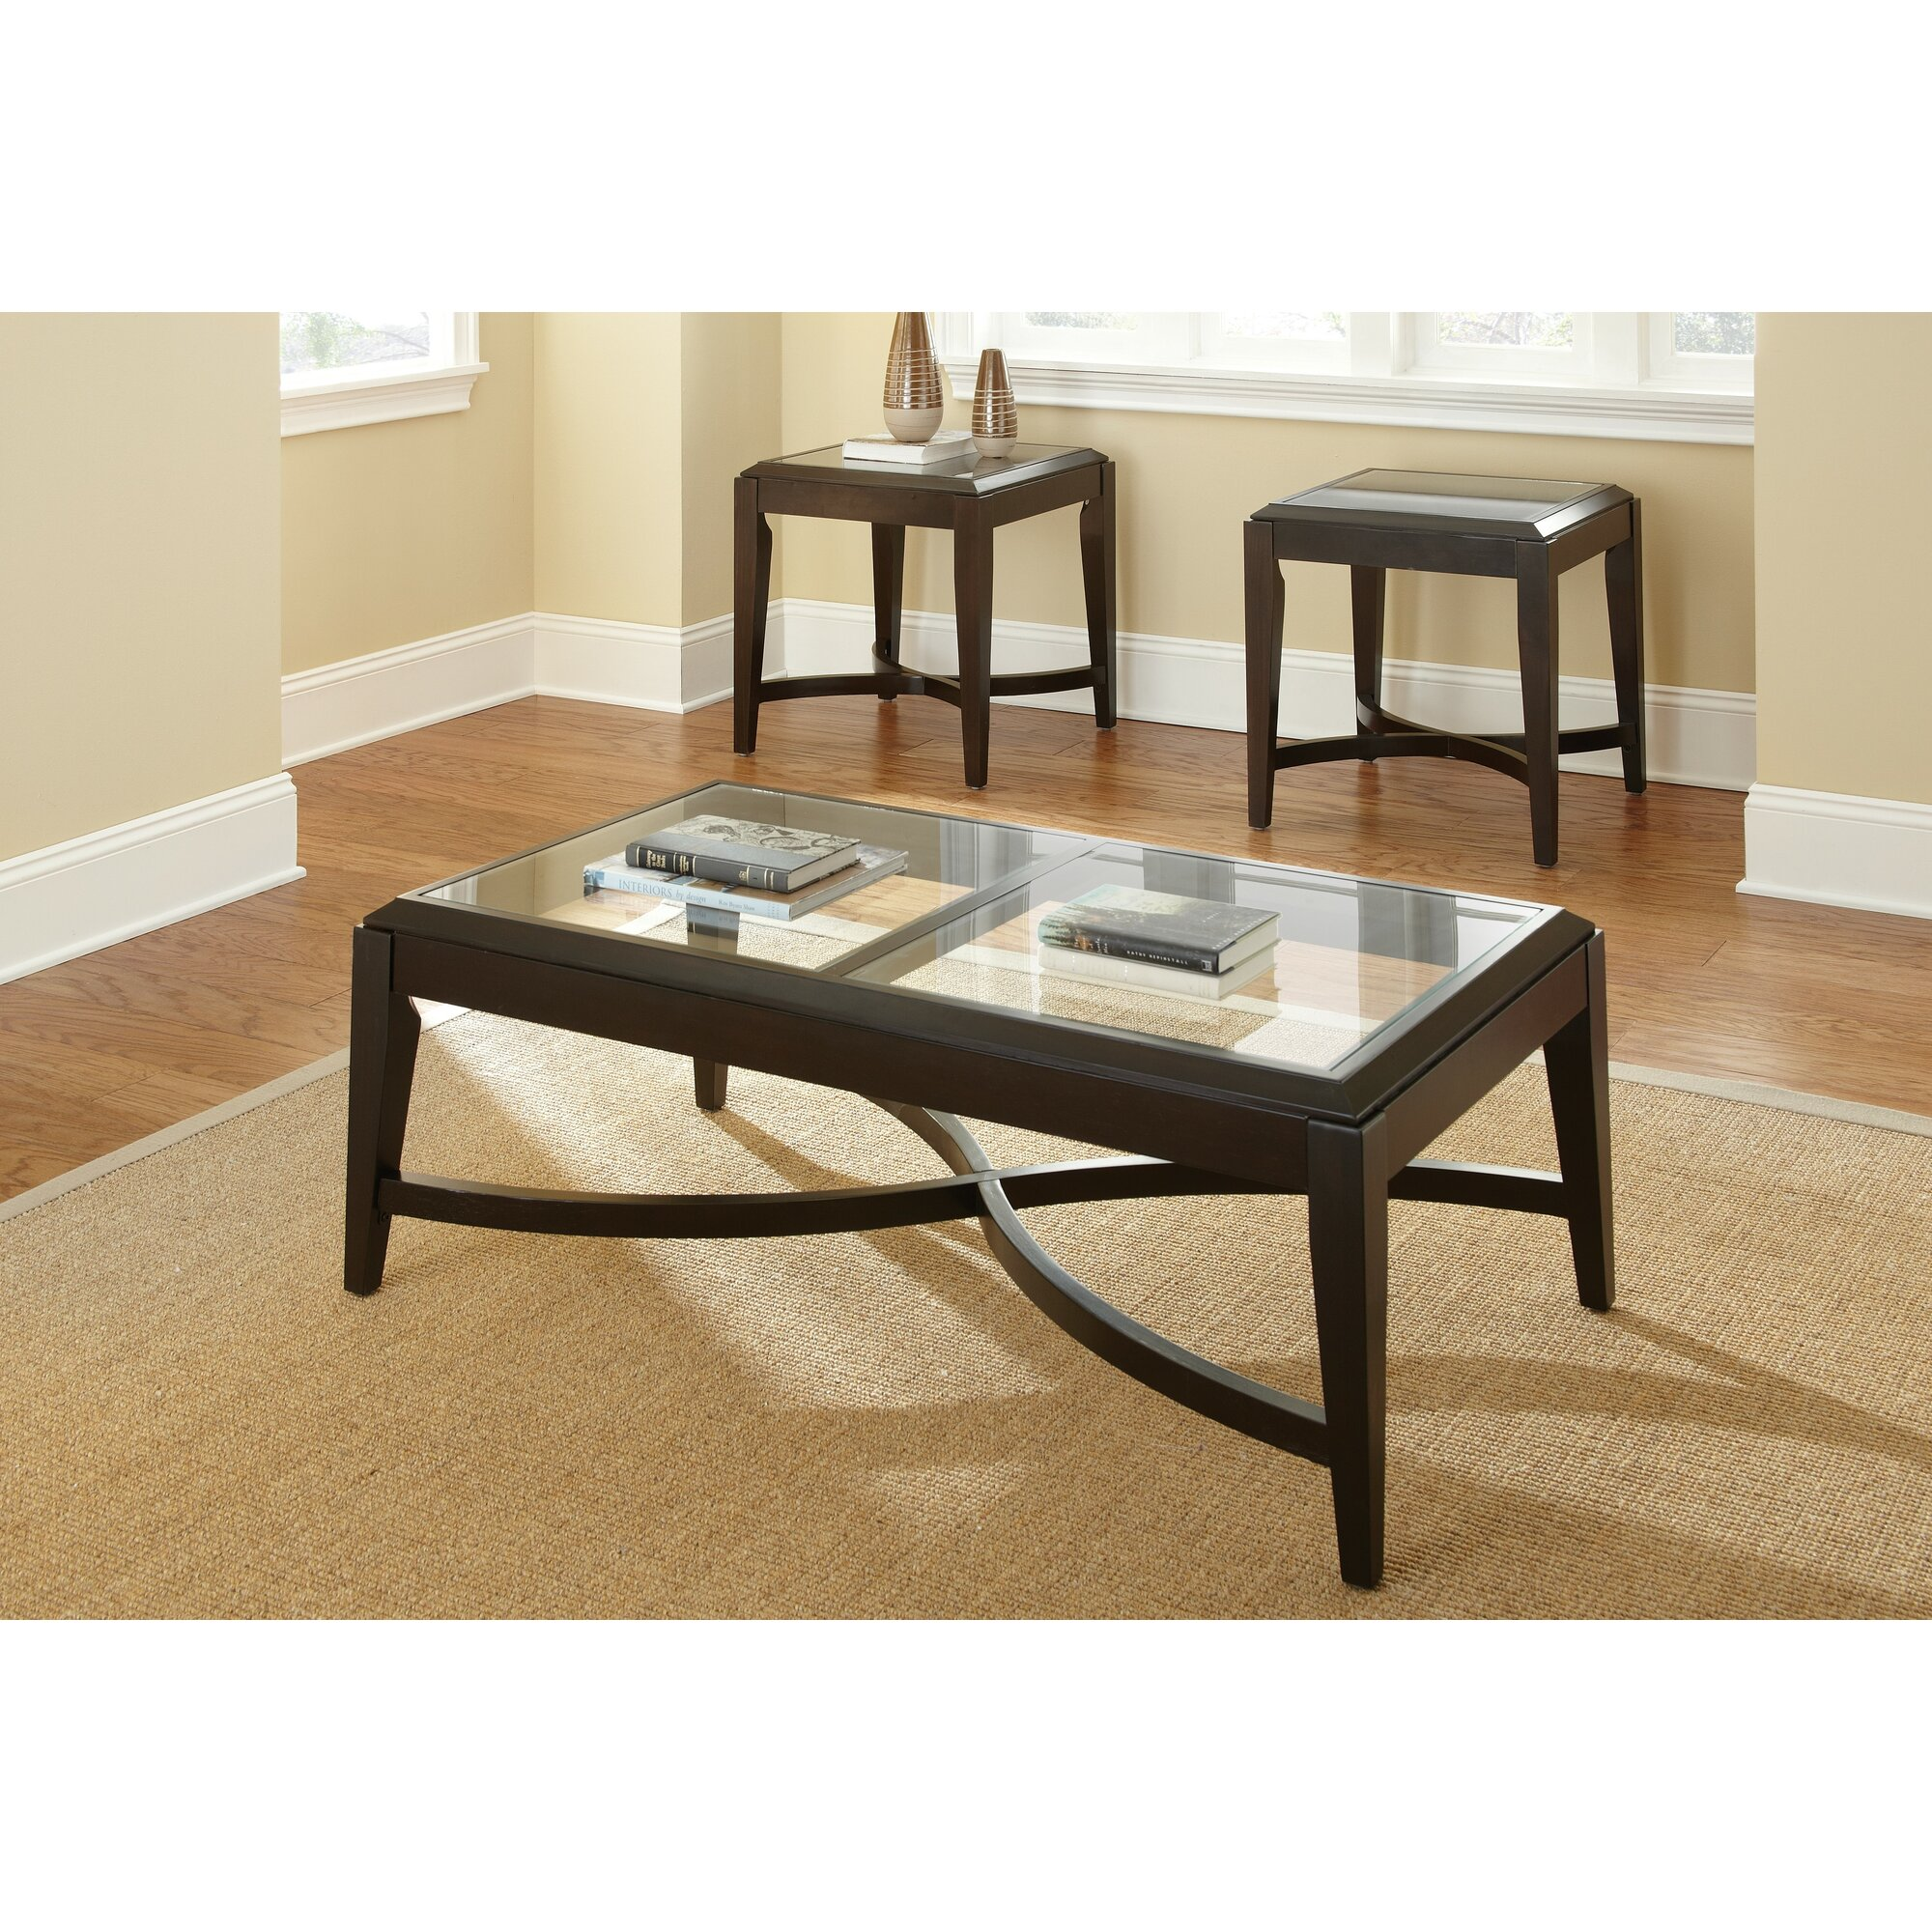 Steve Silver Coffee Table Instacoffeetable